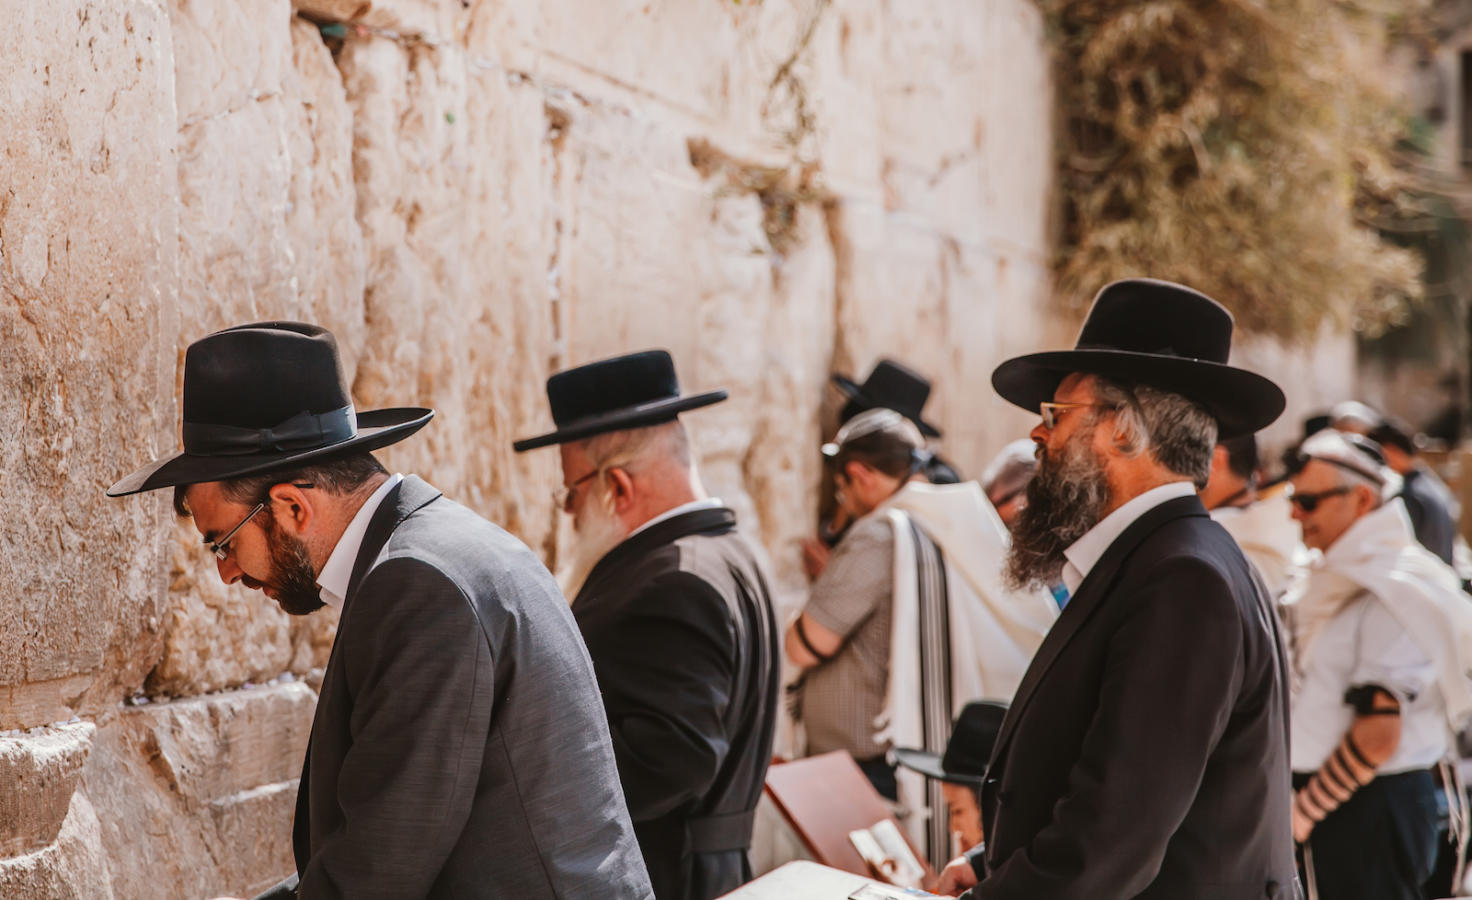 Jews Praying at Western Wall